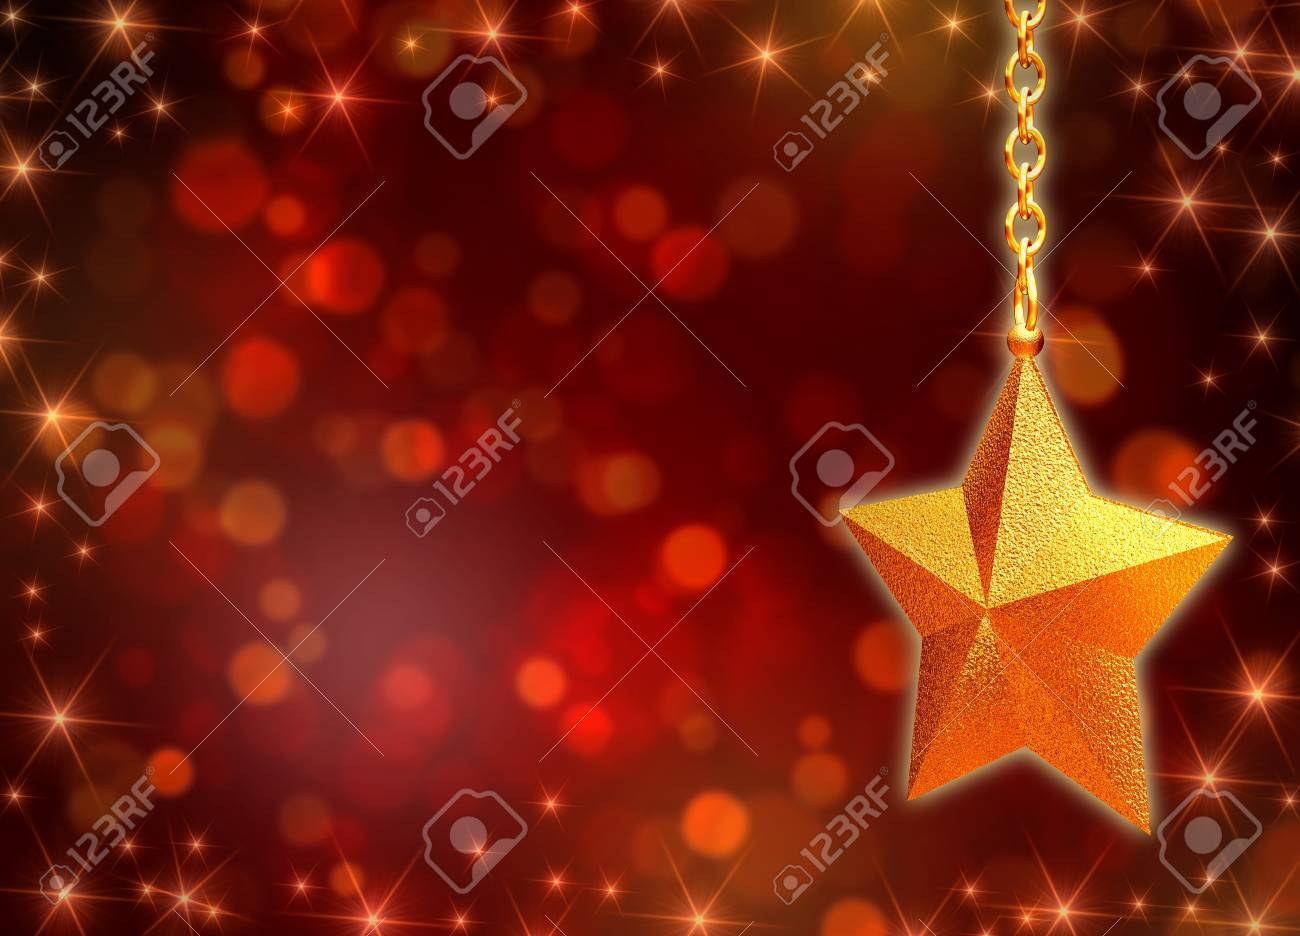 3d golden star with chains over red background with lights Stock Photo - 11563669